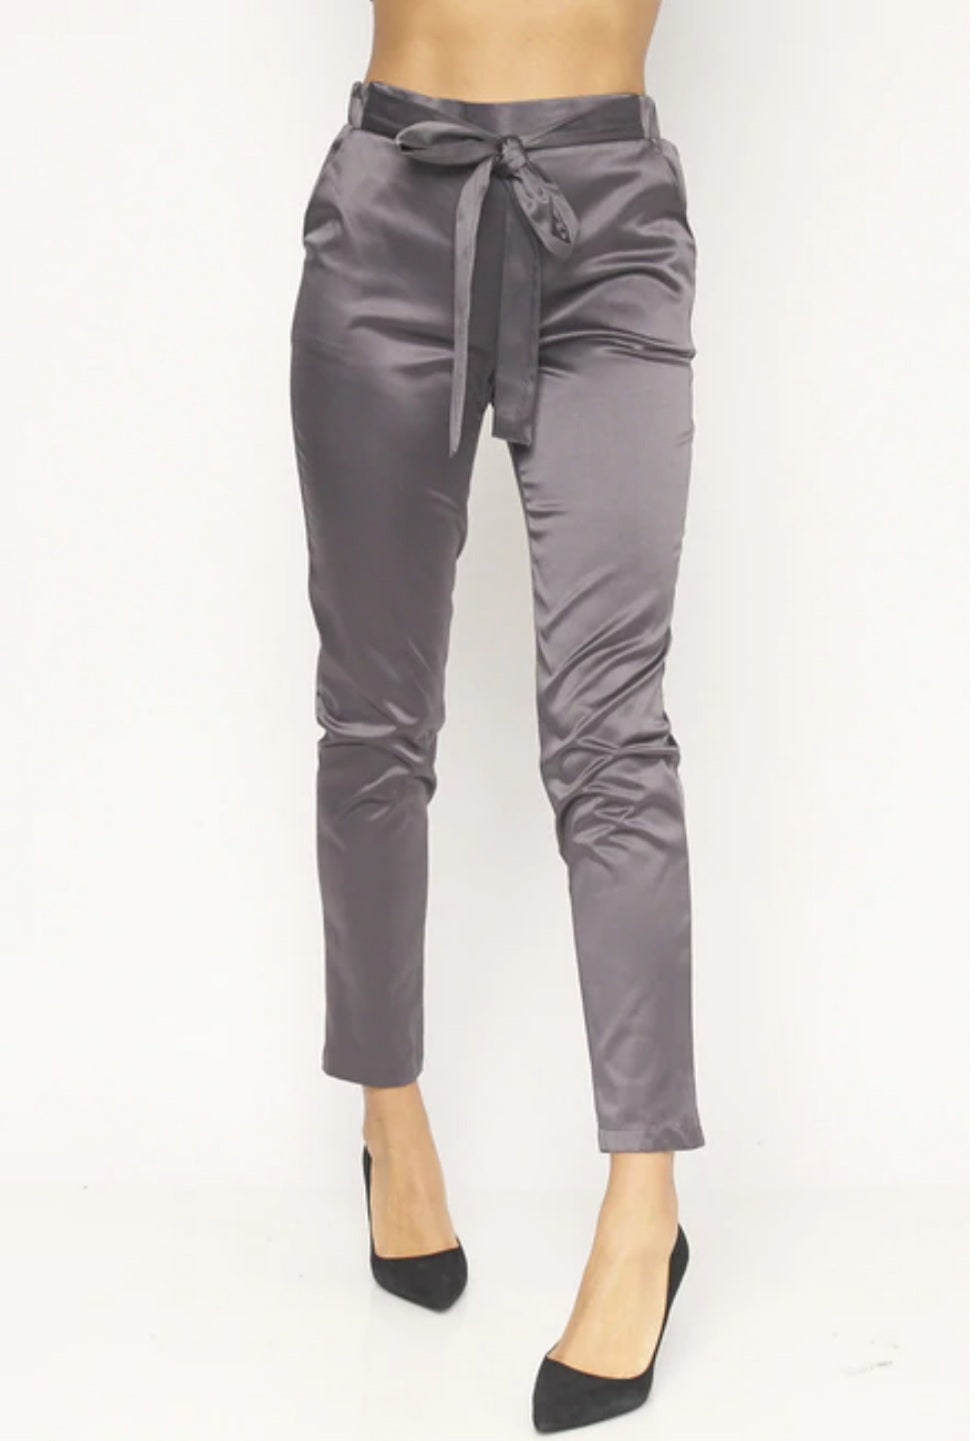 Women's Satin Skinny Leg Pants With Self Tie Waist - Lookeble